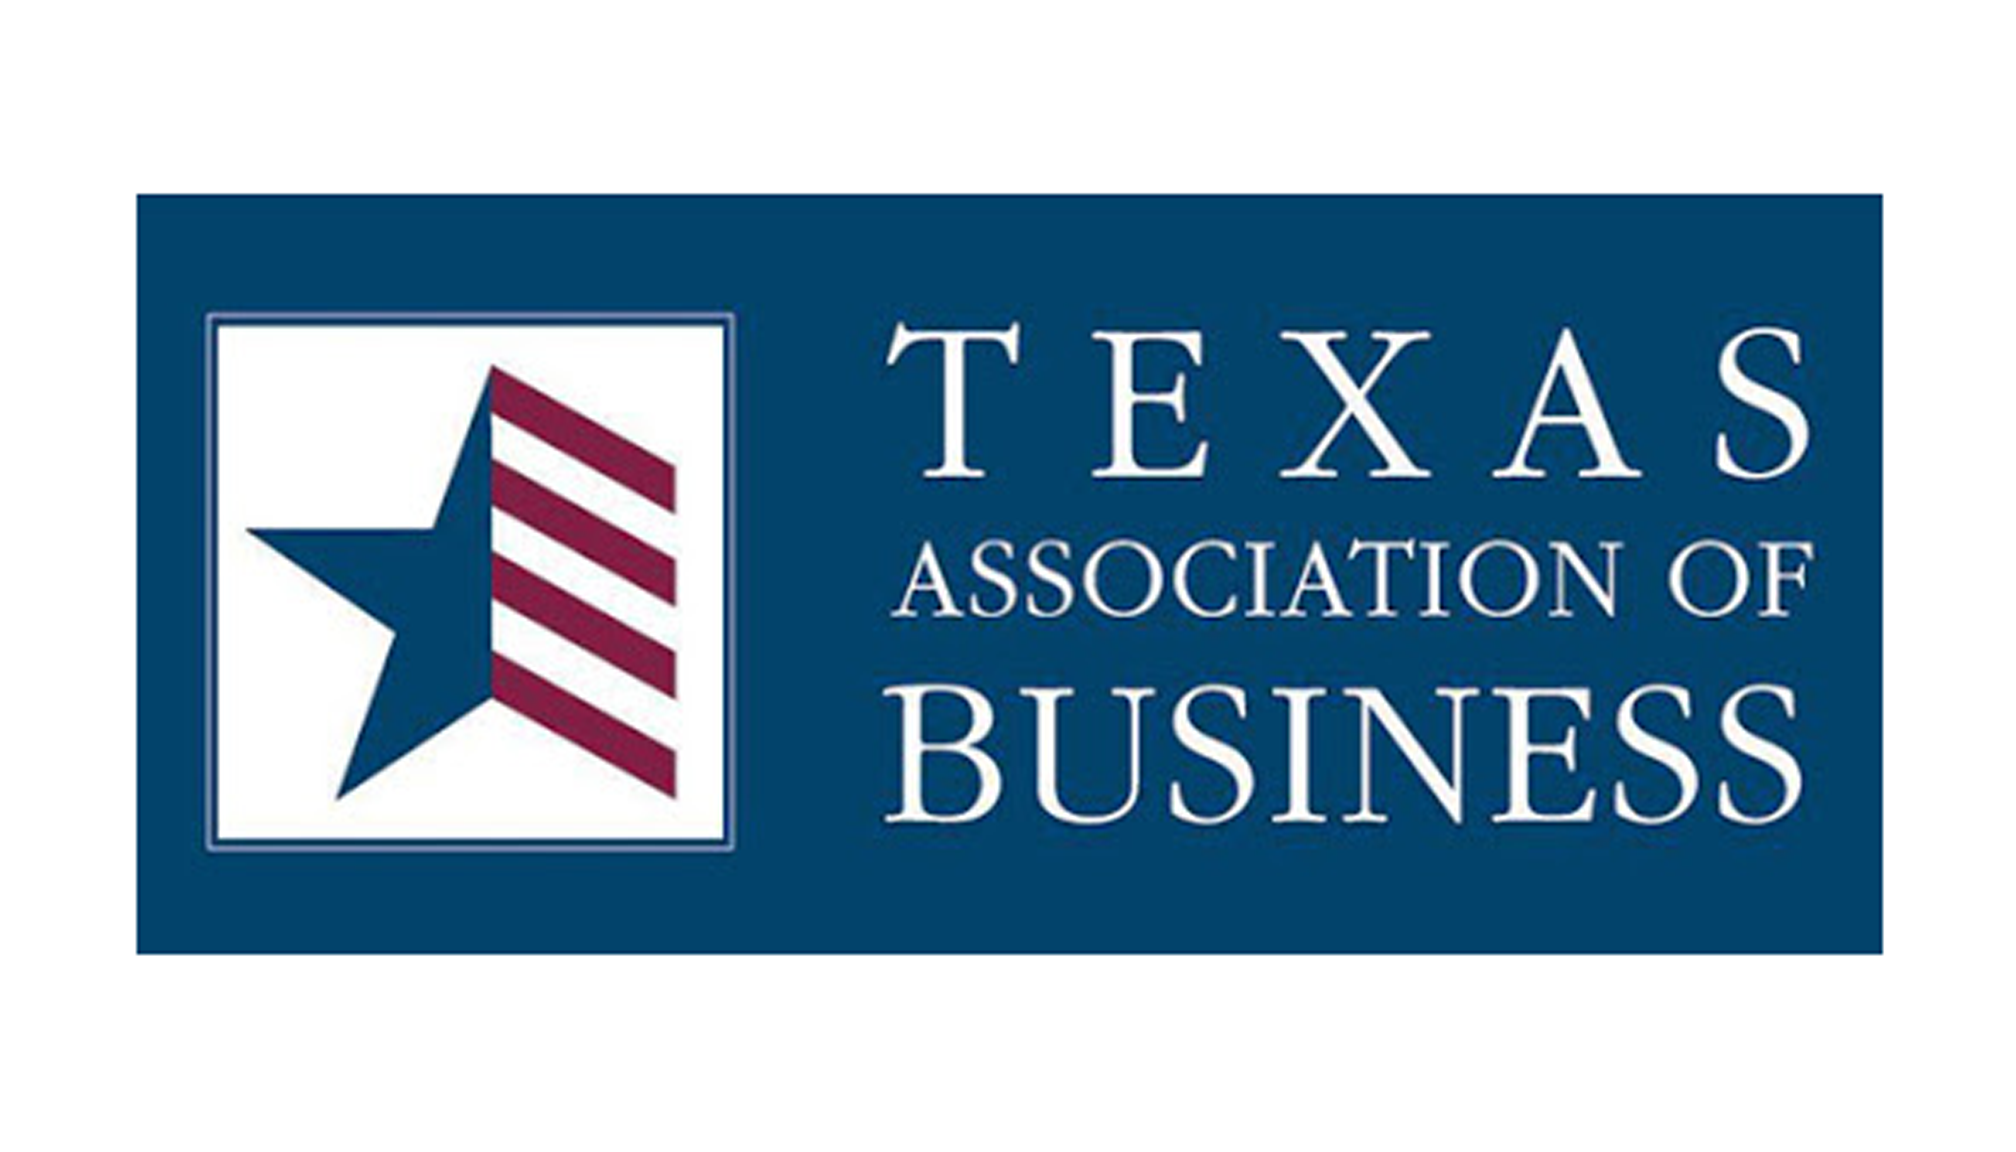 Texas Association of Business - SPM - Rockwall TX